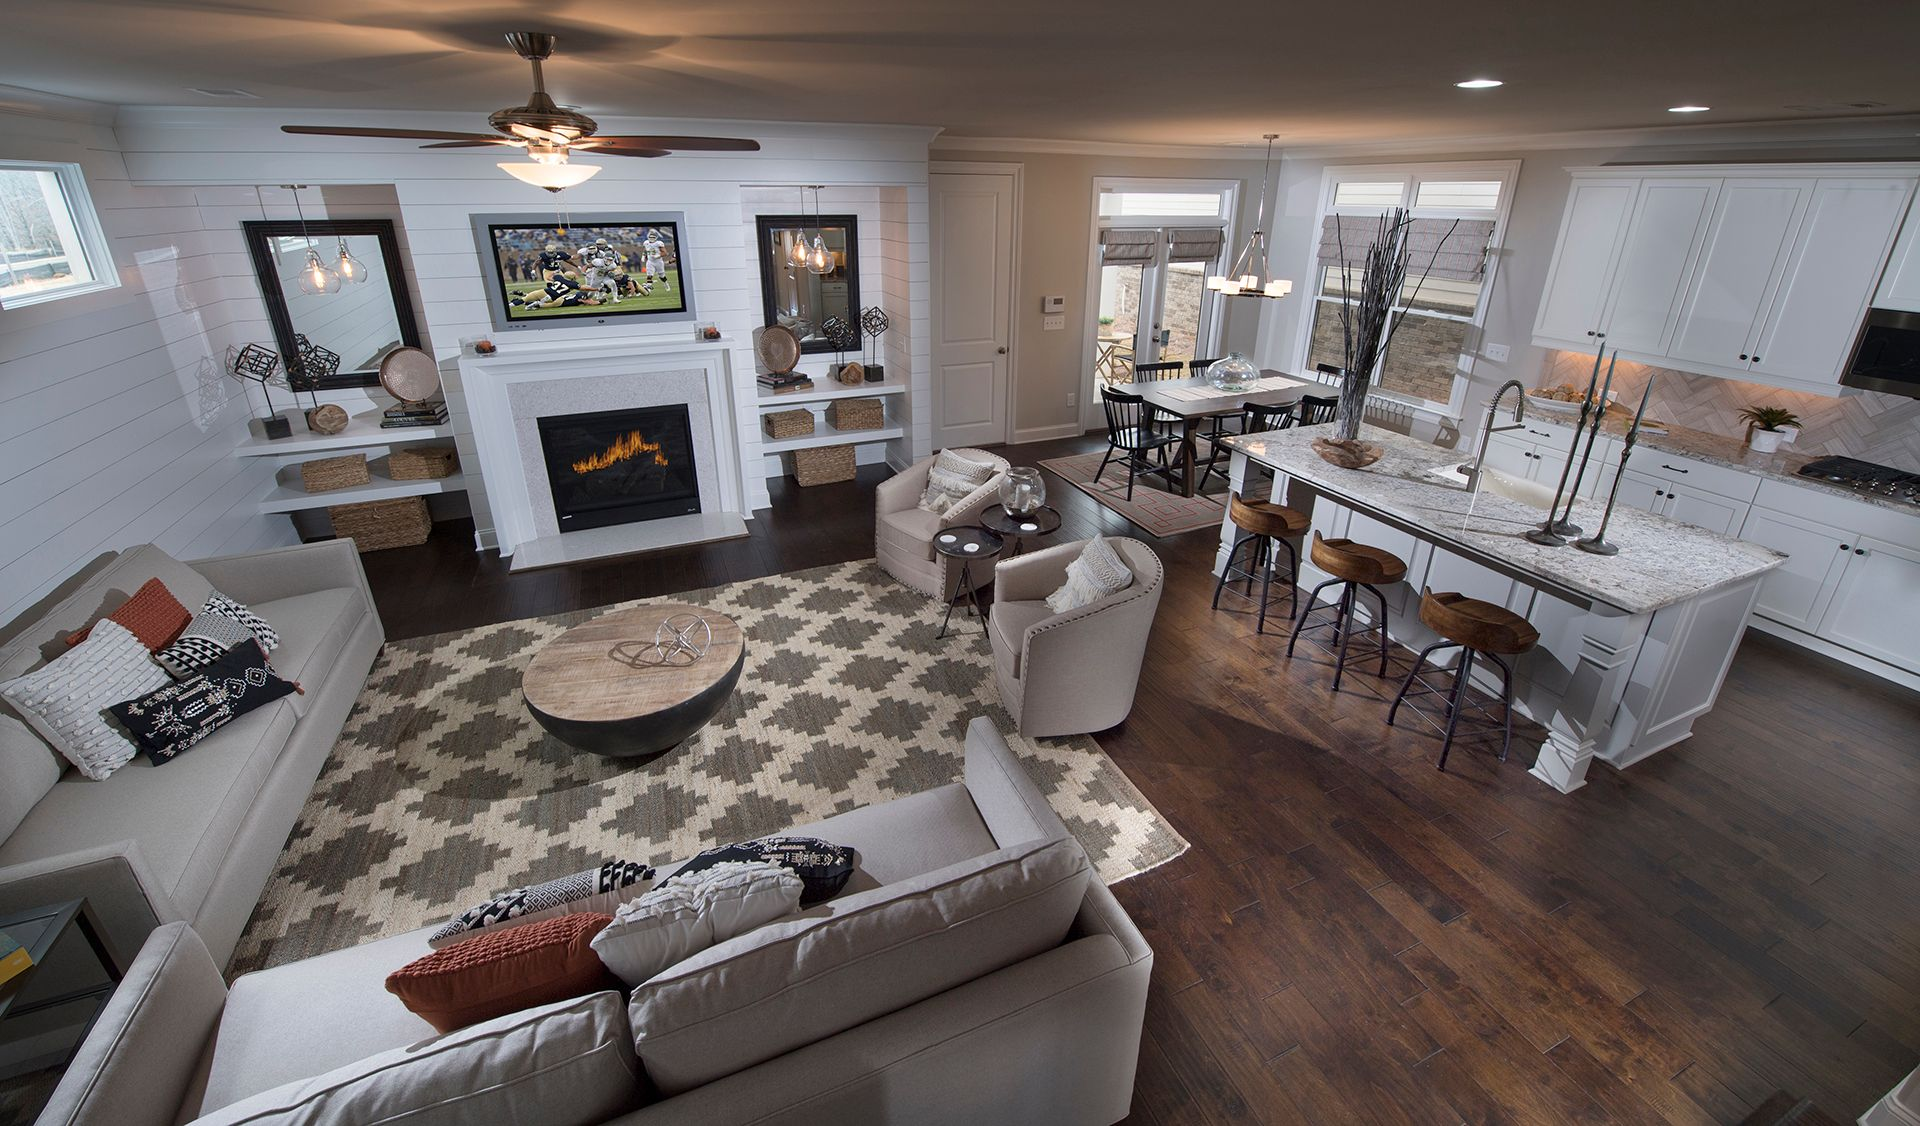 Single Family for Sale at The Danville 7110 Grandview Overlook Johns Creek, Georgia 30097 United States